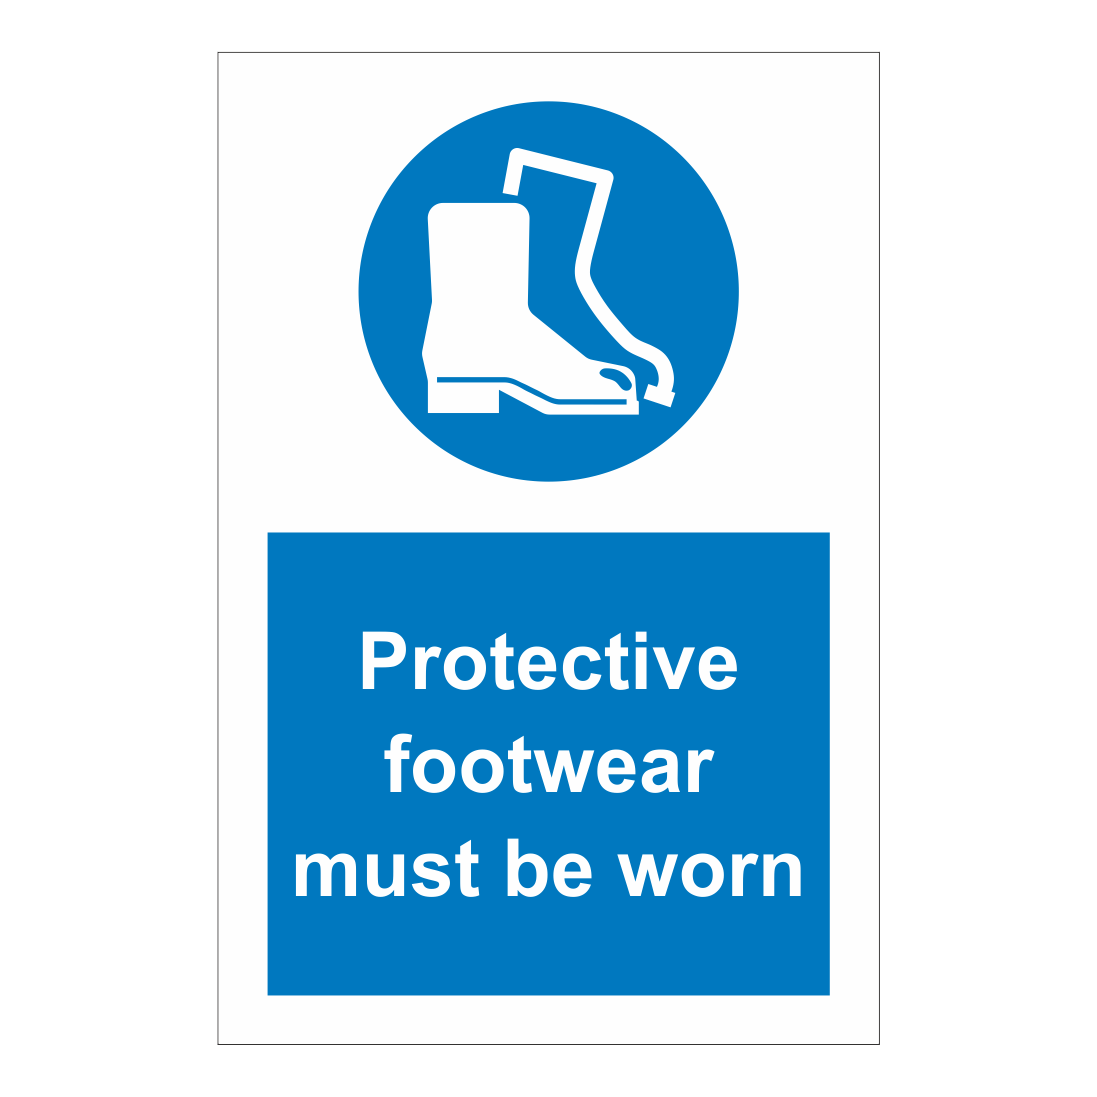 protective footwear must be worn sign safety clothing